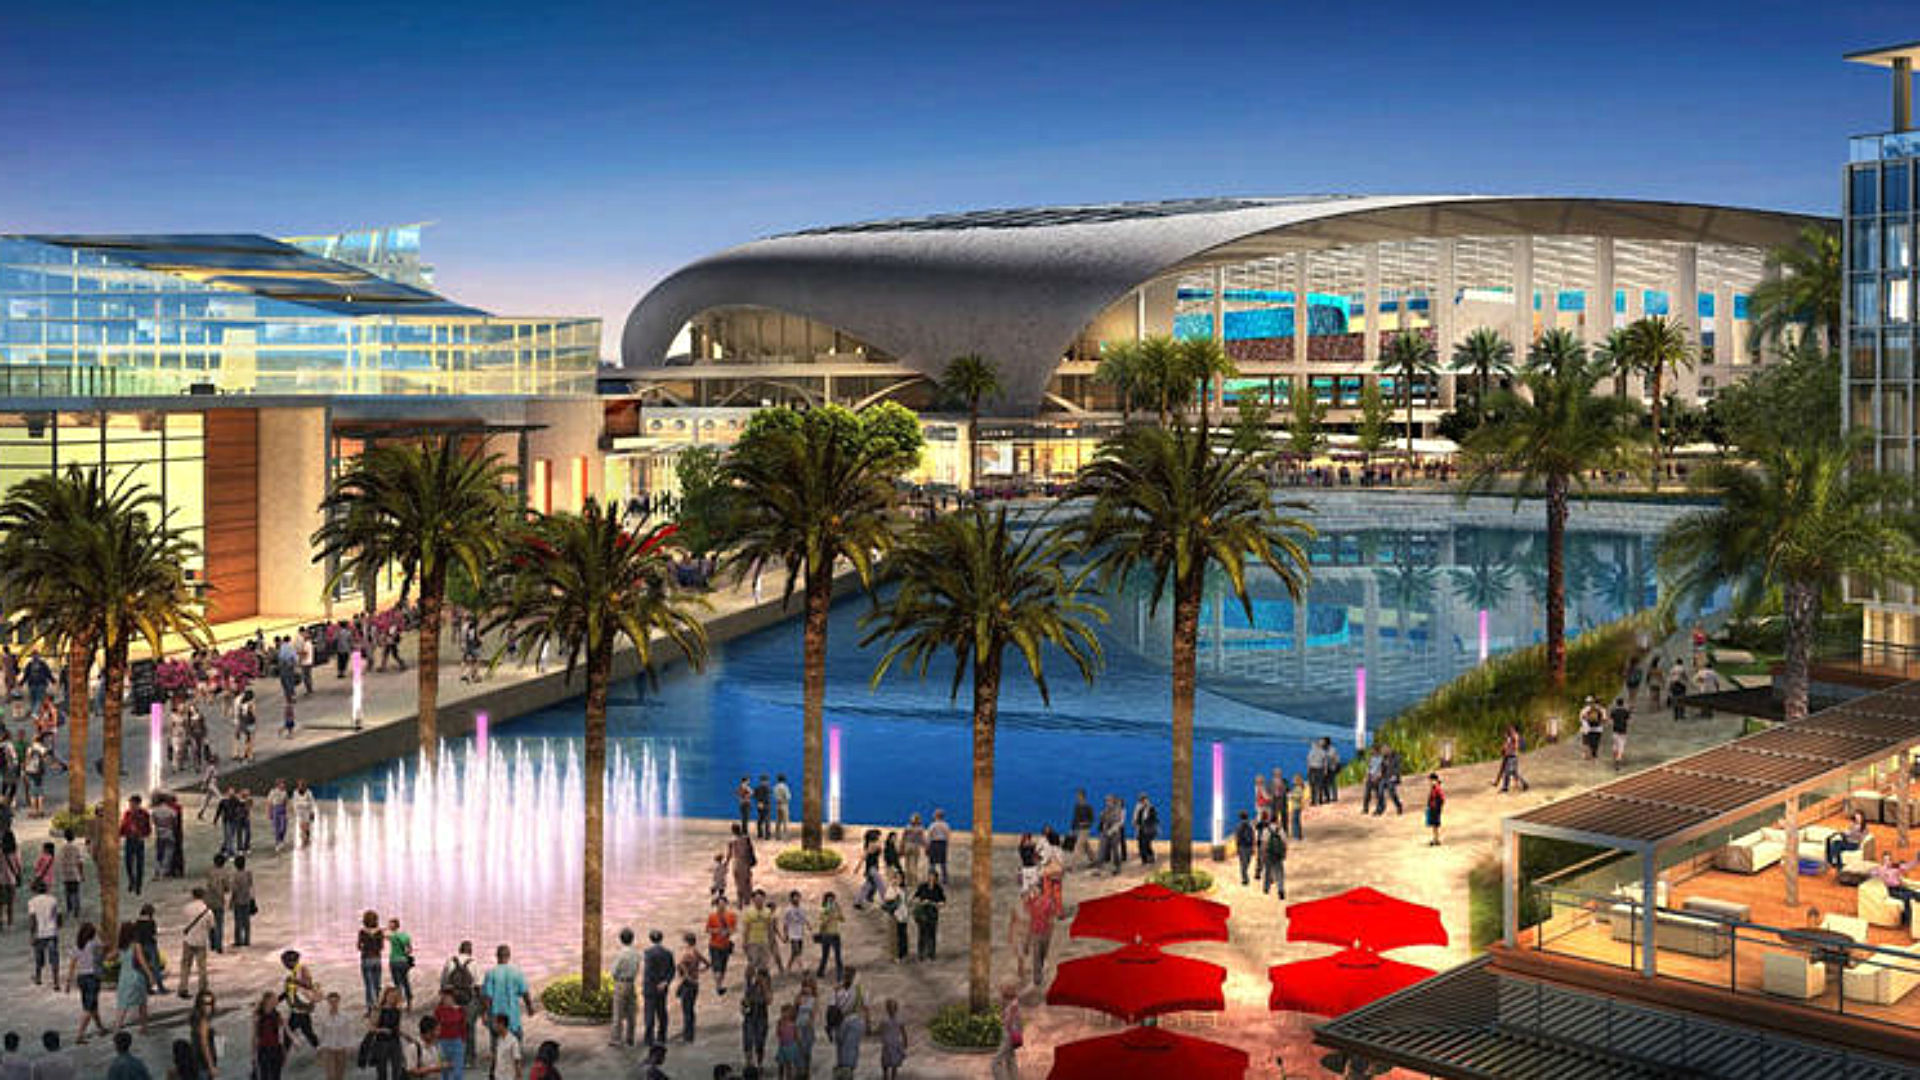 Inglewood stadium rendering